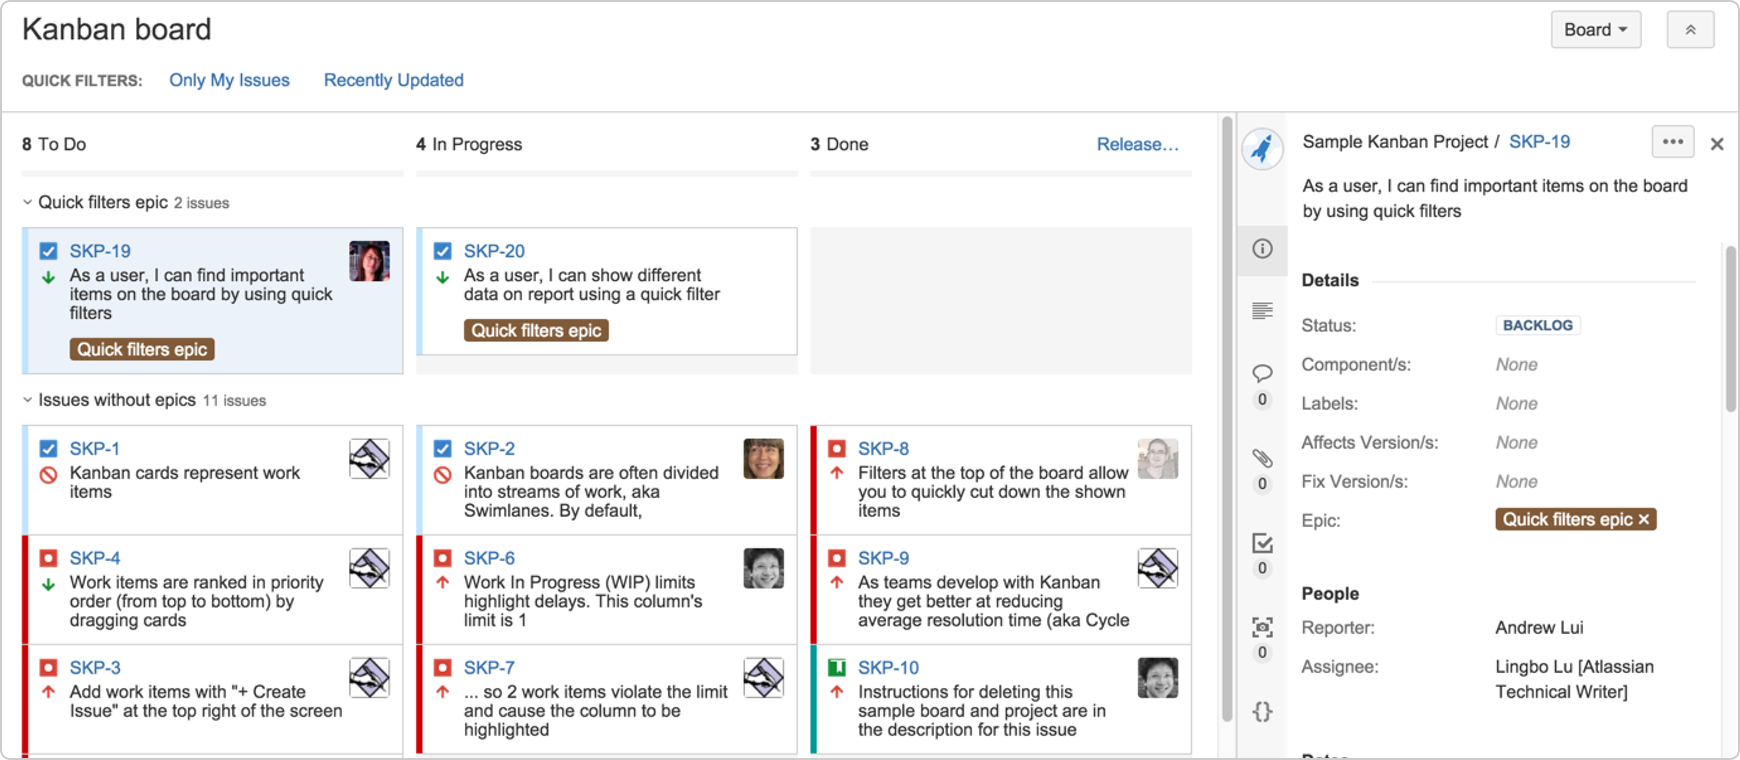 A example of a Kanban view from JIRA, the software package we use at work.